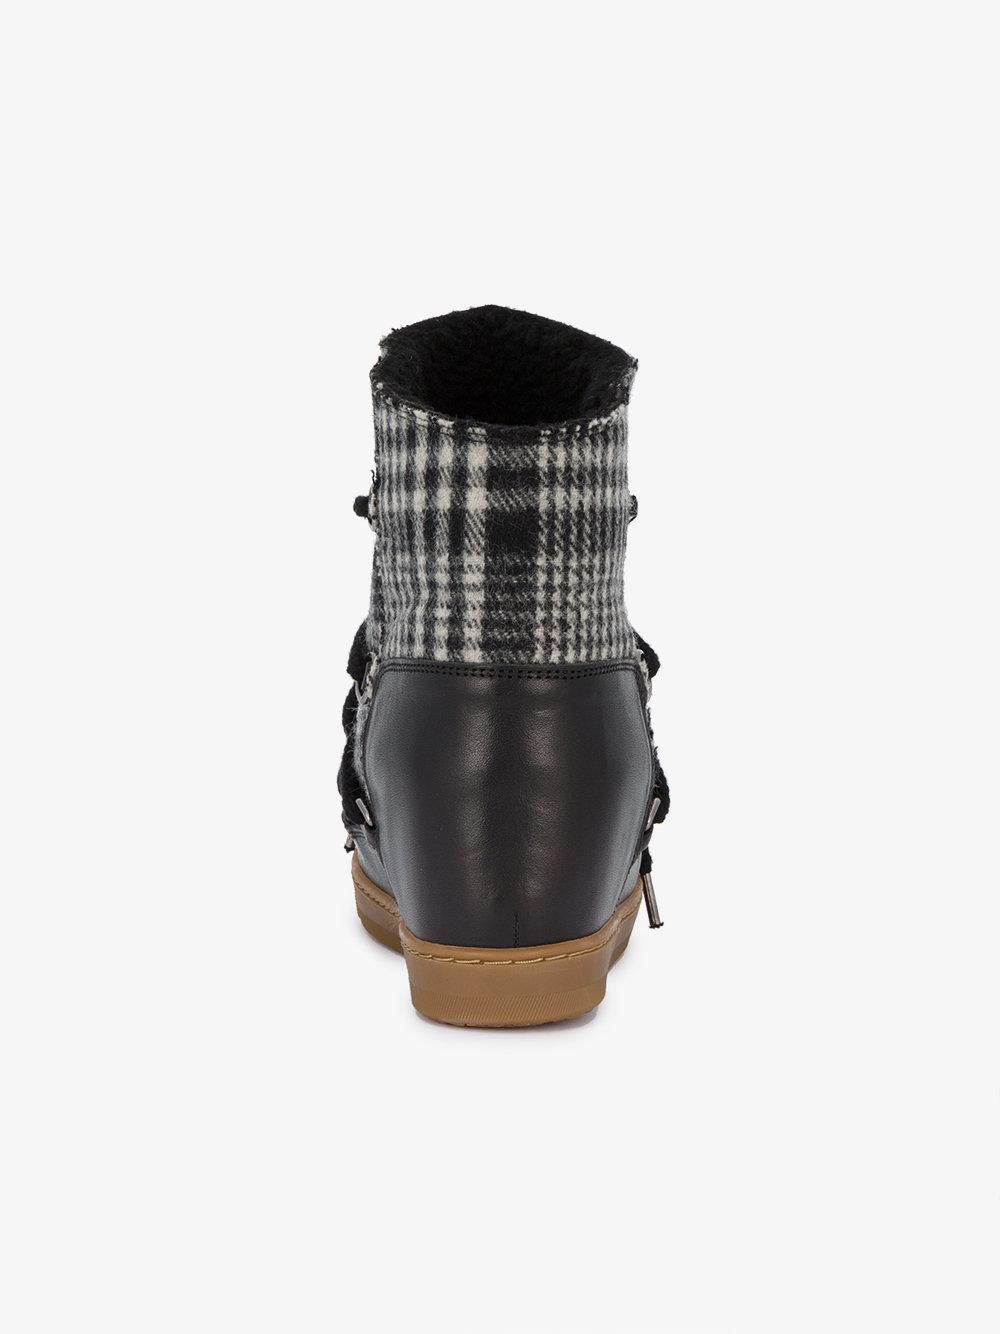 Isabel Marant Leather Nowles Boots in Brown